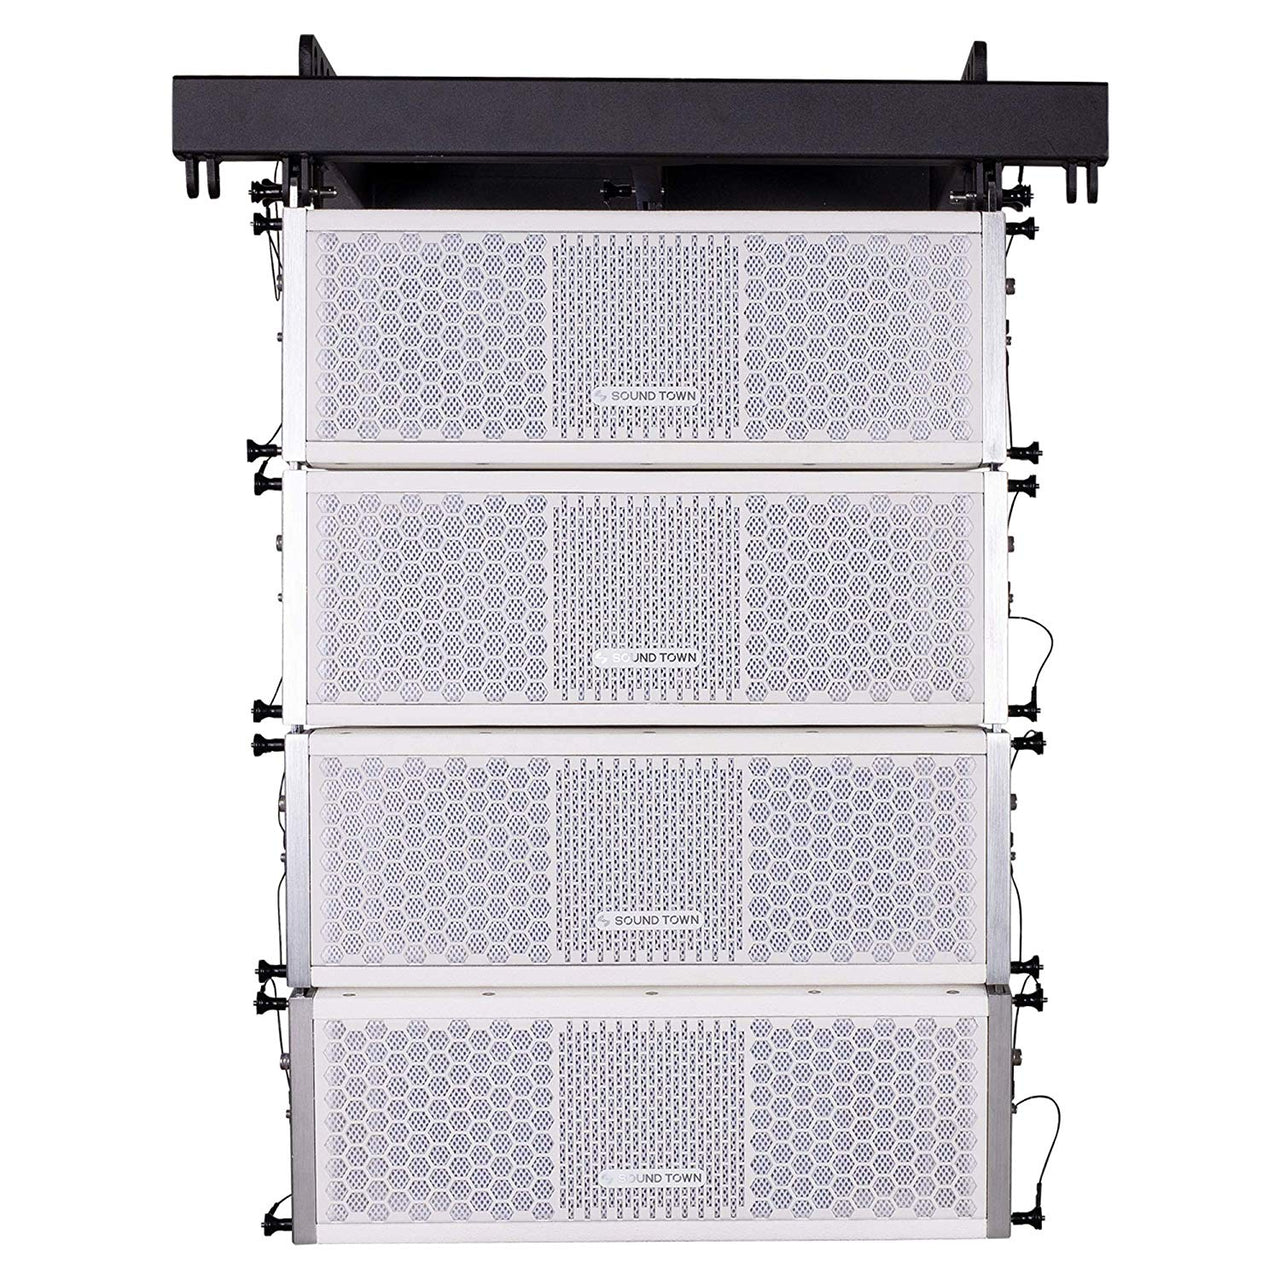 Sound Town ZETHUS Series Line Array Speaker System with Four White Compact 2 X 5-inch Line Array Speakers, White (ZETHUS-205WV2X4)